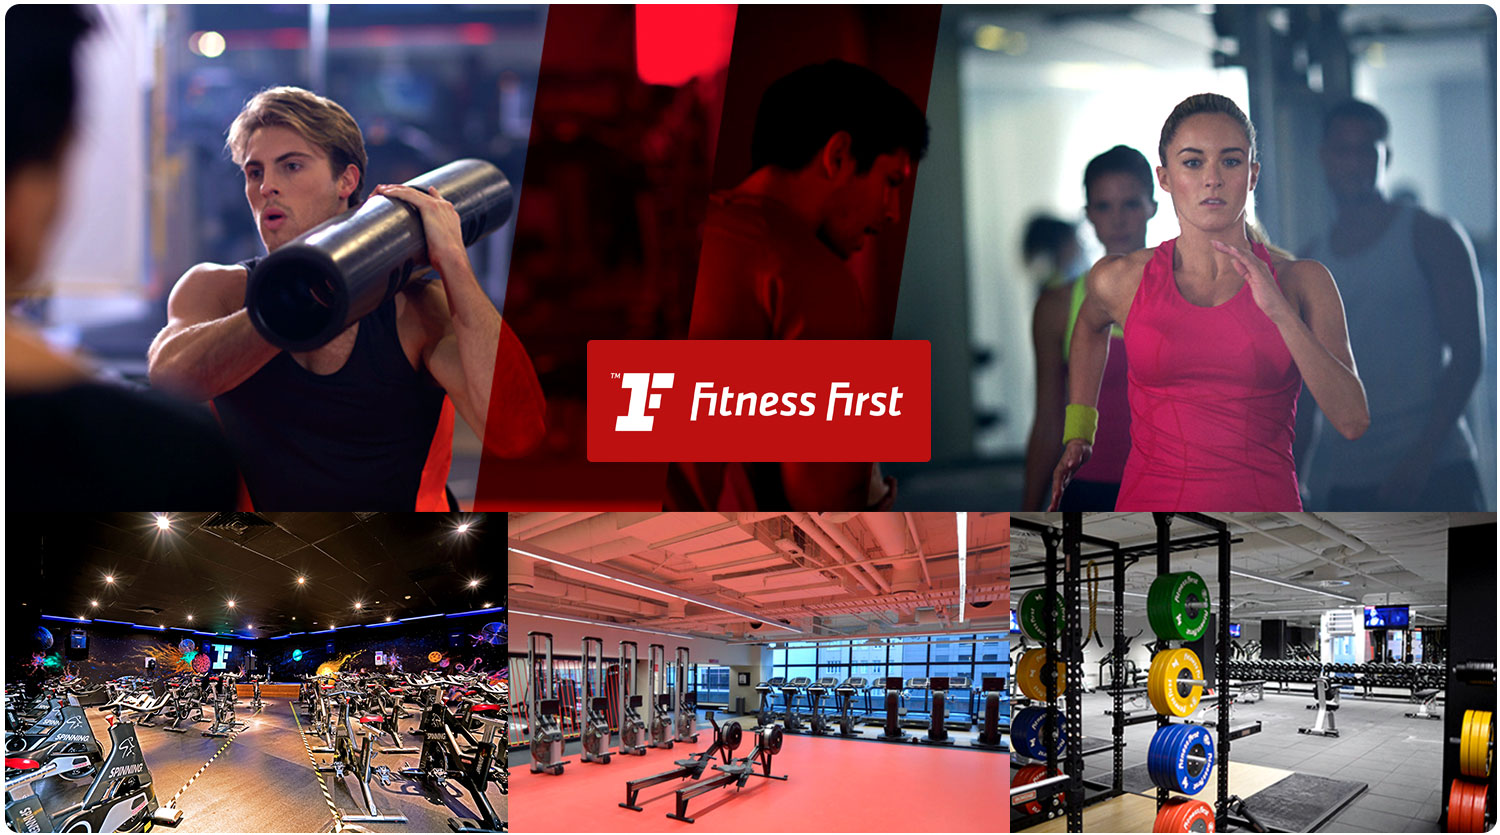 Start your Fitness Journey with Fitness First with only $14.95 for 14 days at Fitness First Canberra ACT. Experience our first class gym and freestyle classes inc. Pilates, Yoga, Boxing, Les Mills and more. Take the first step with Fitness First Canberra ACT.